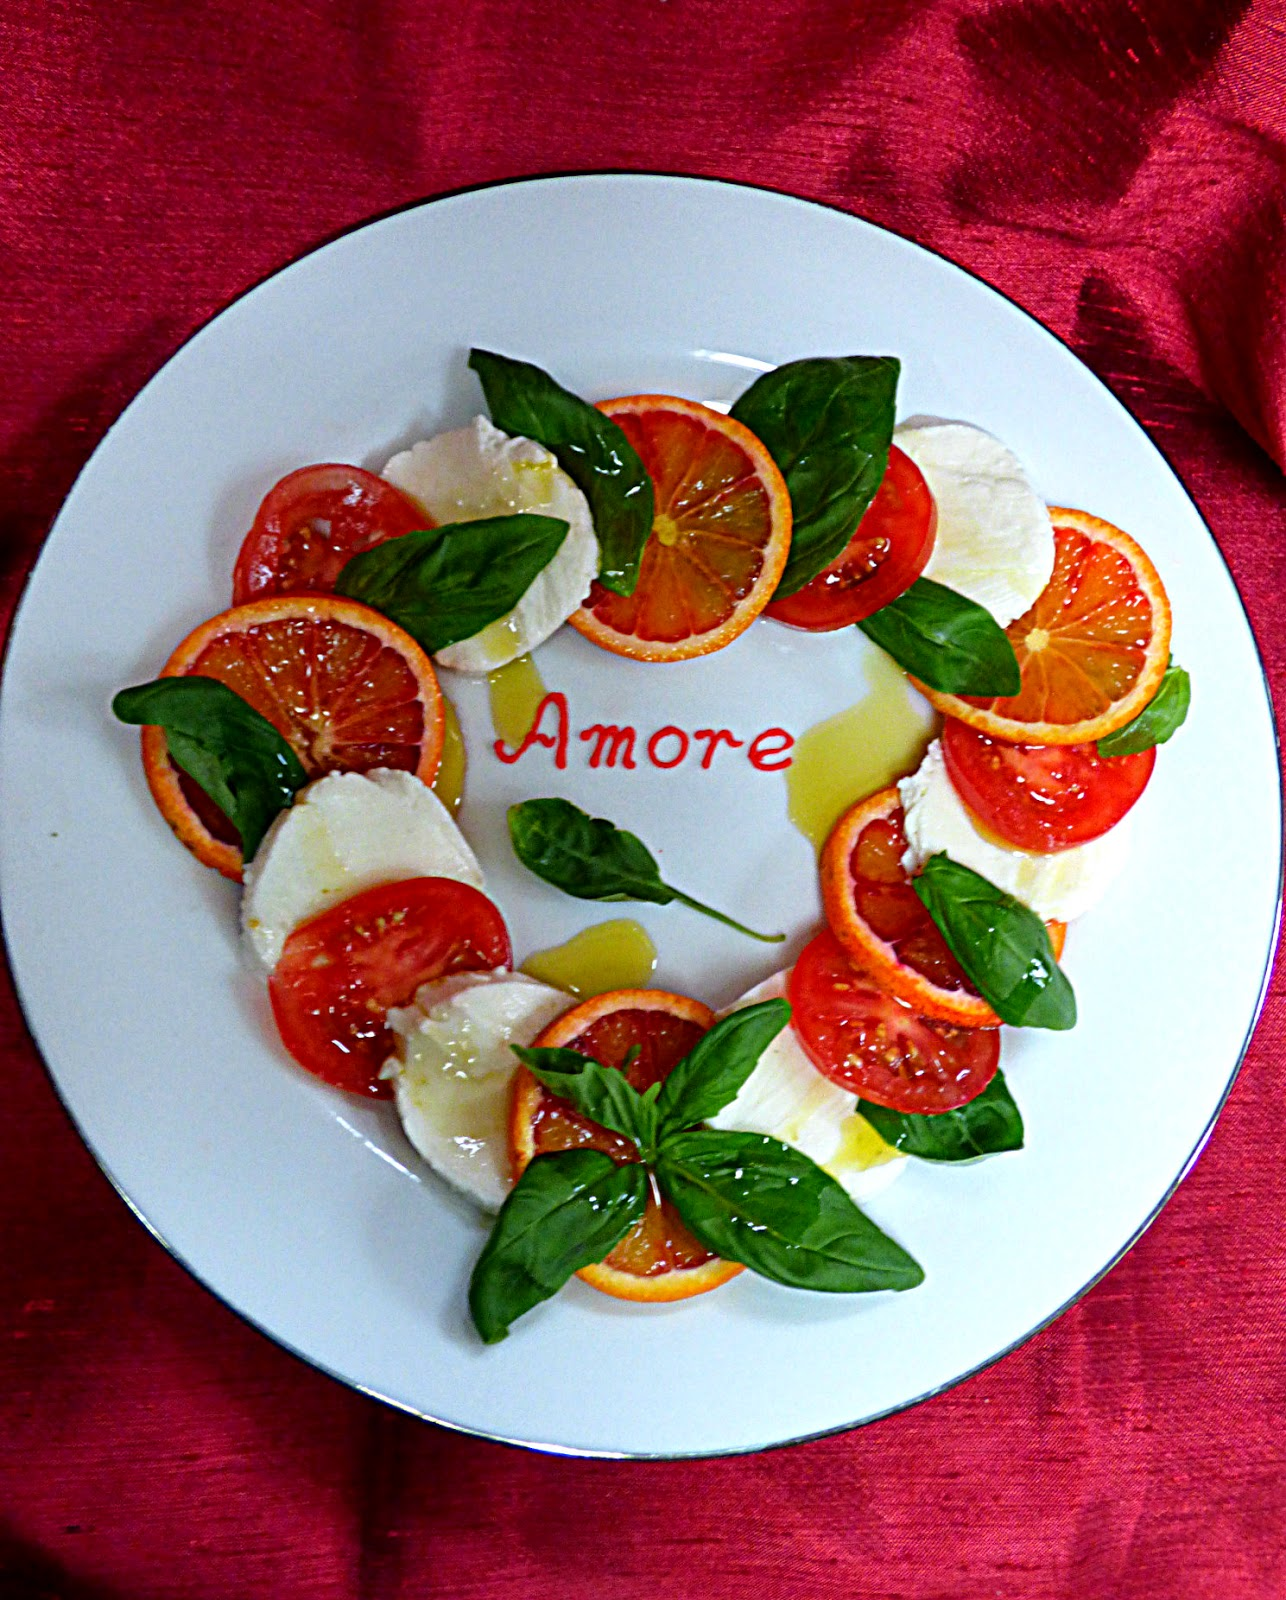 Italian salad, blood orange recipe